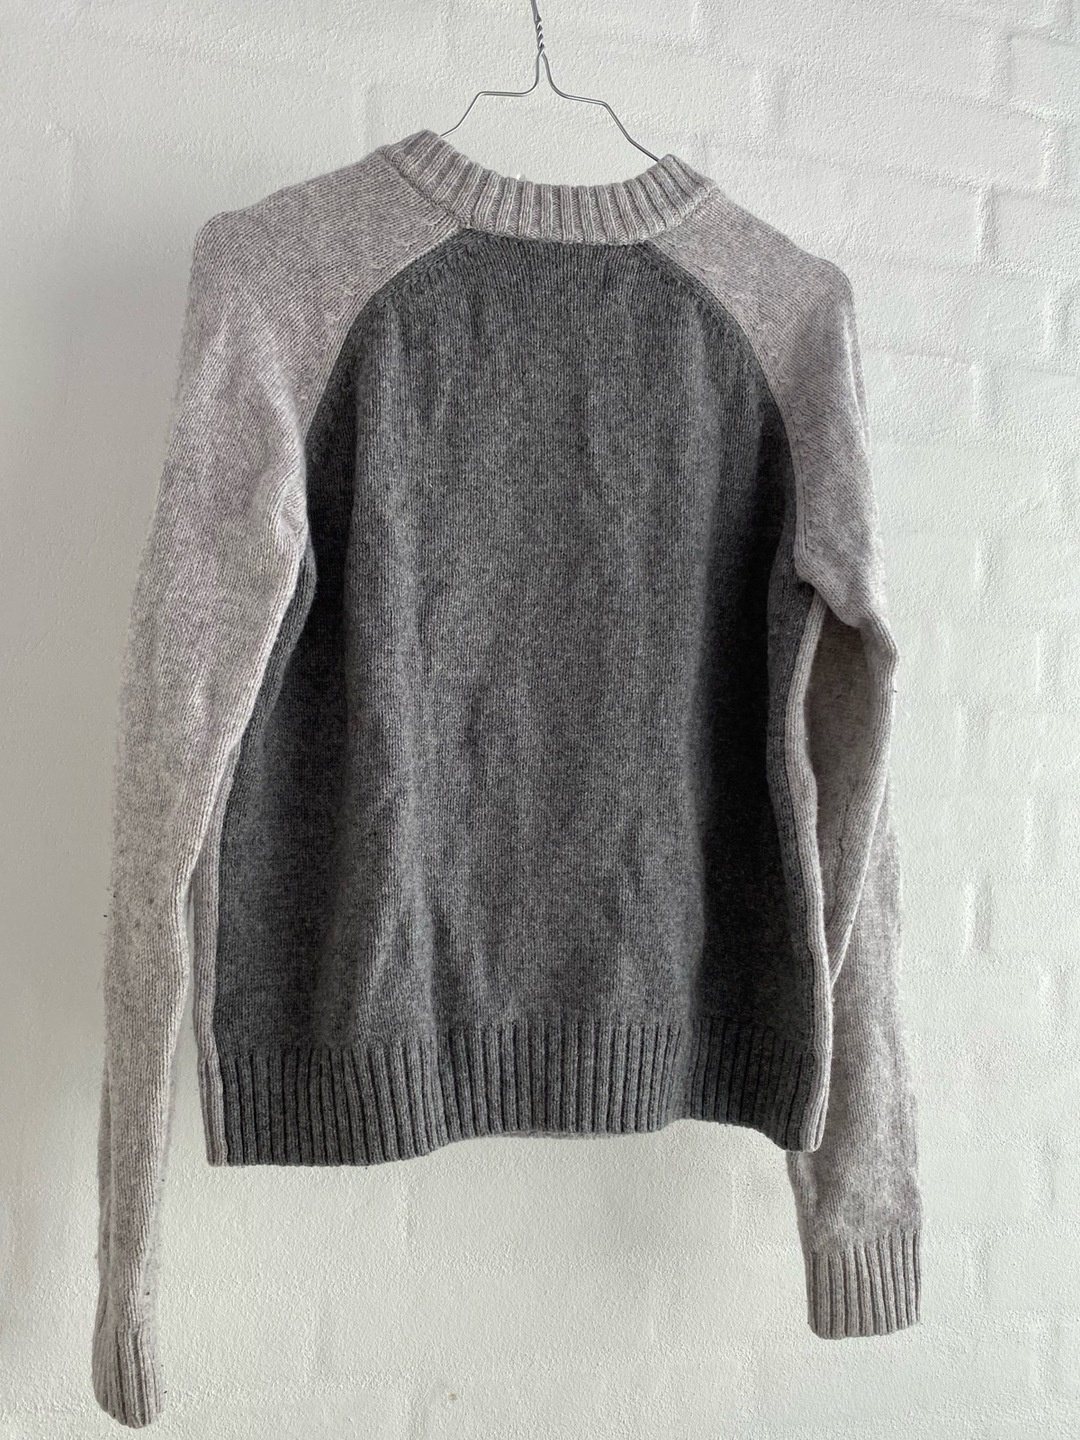 Women's jumpers & cardigans - WOOD WOOD photo 2